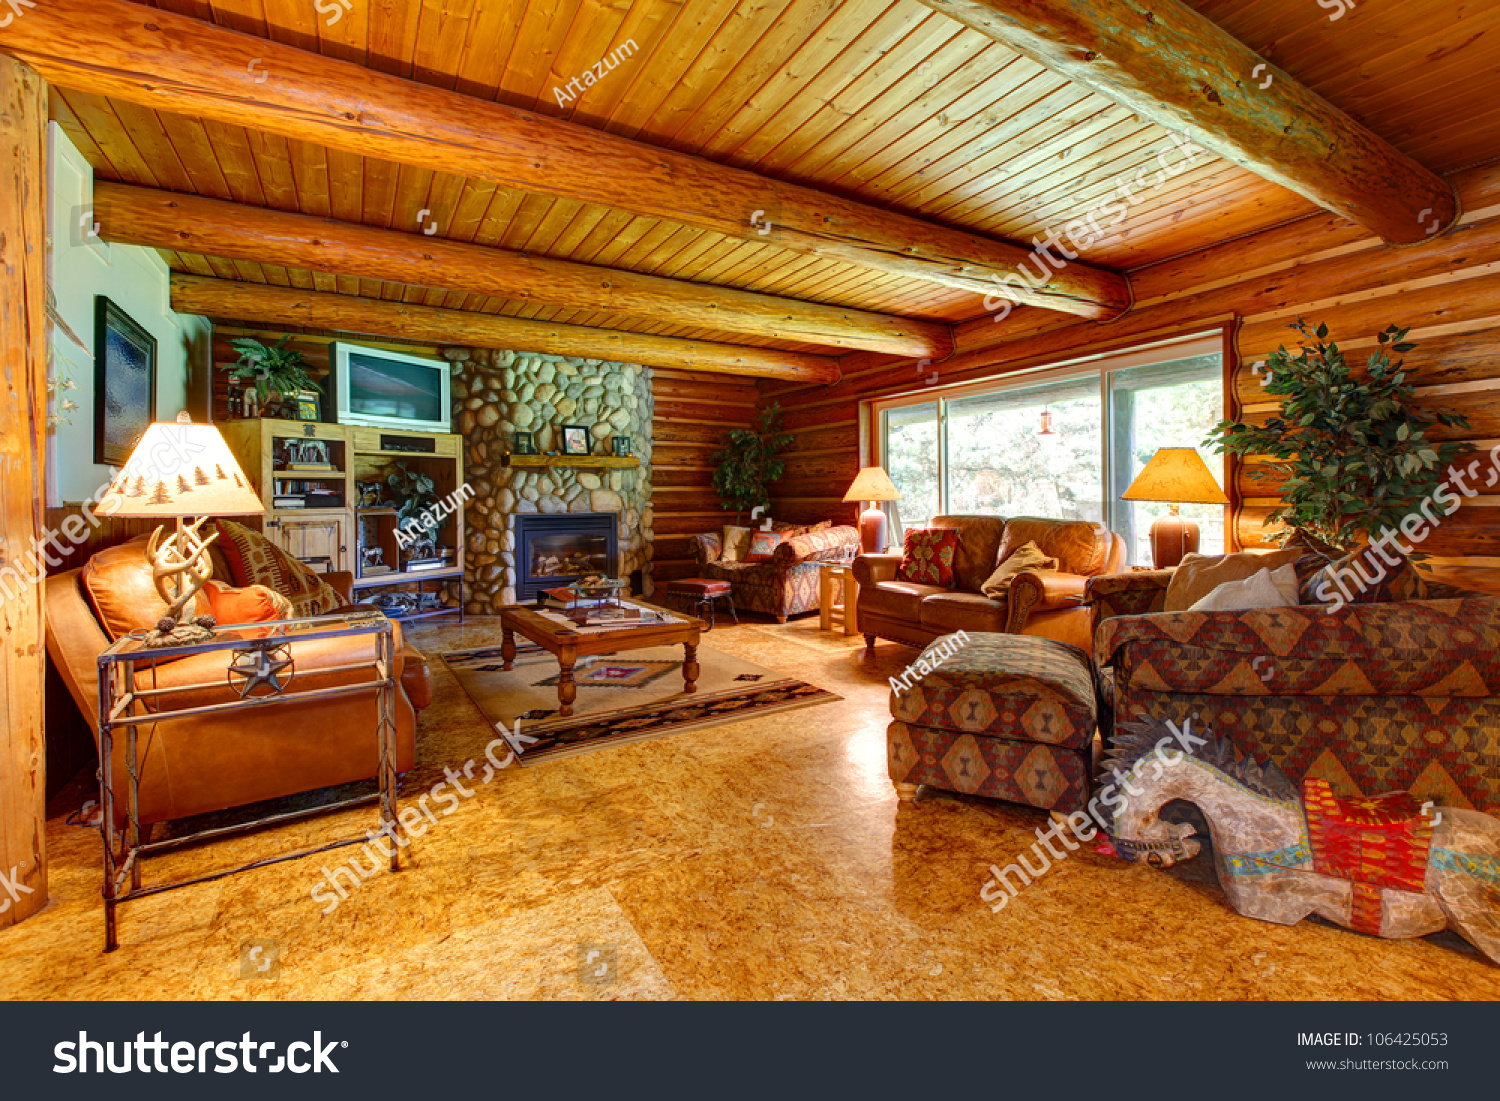 log cabin living room interior with wood ceiling - Log Cabin Living Room